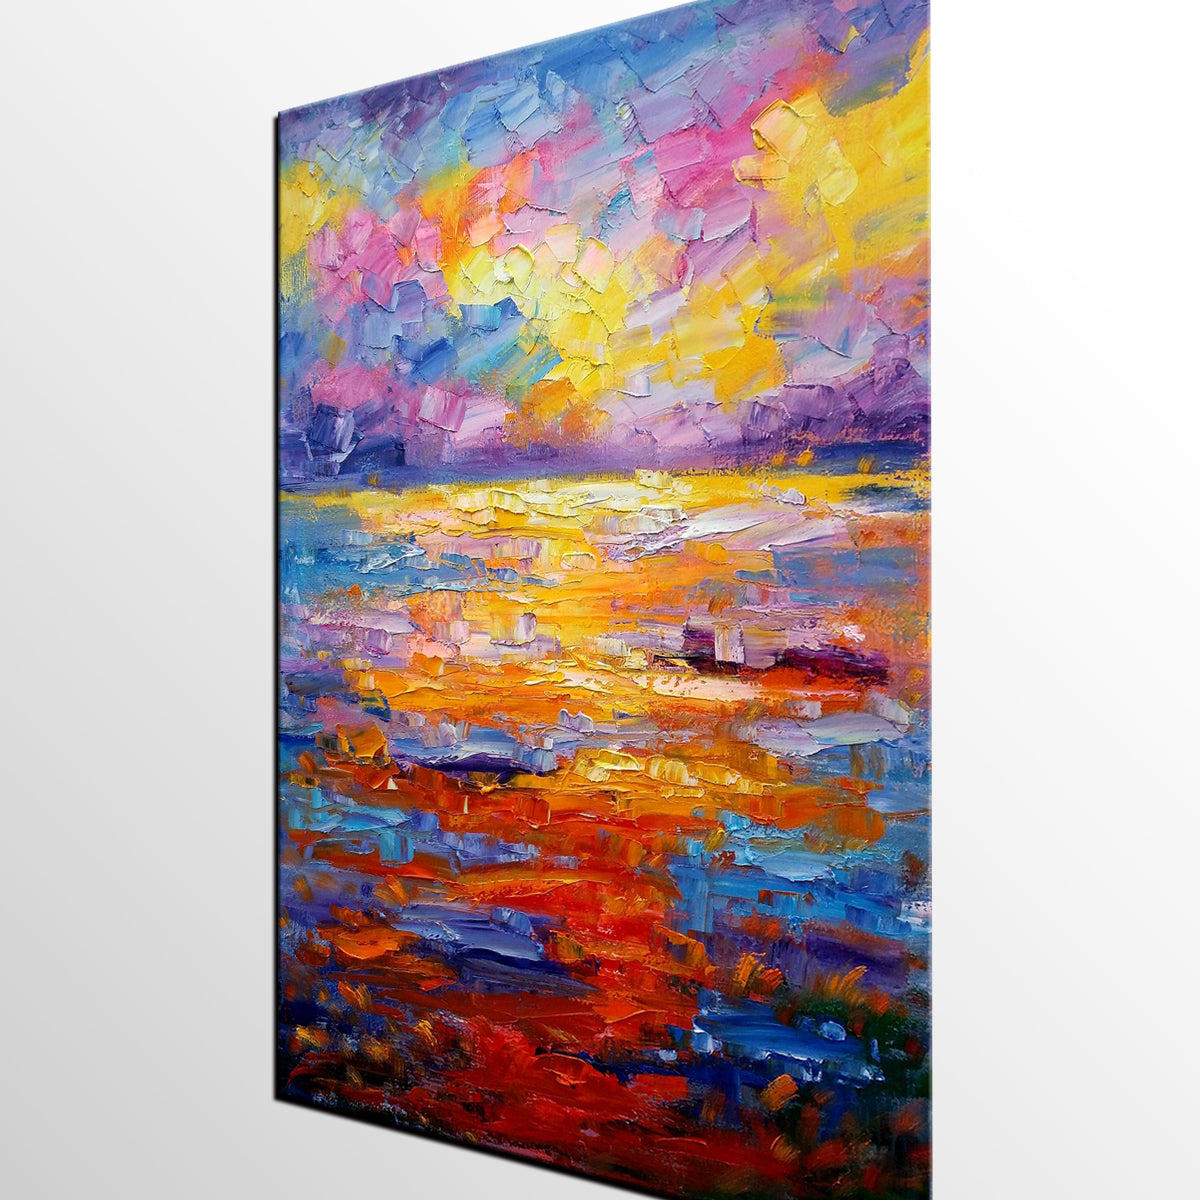 Large Art, Canvas Art, Abstract Landscape Painting, Wall Decor, Wall Art, Abstract Art, Abstract Painting, Canvas Painting, Modern Art